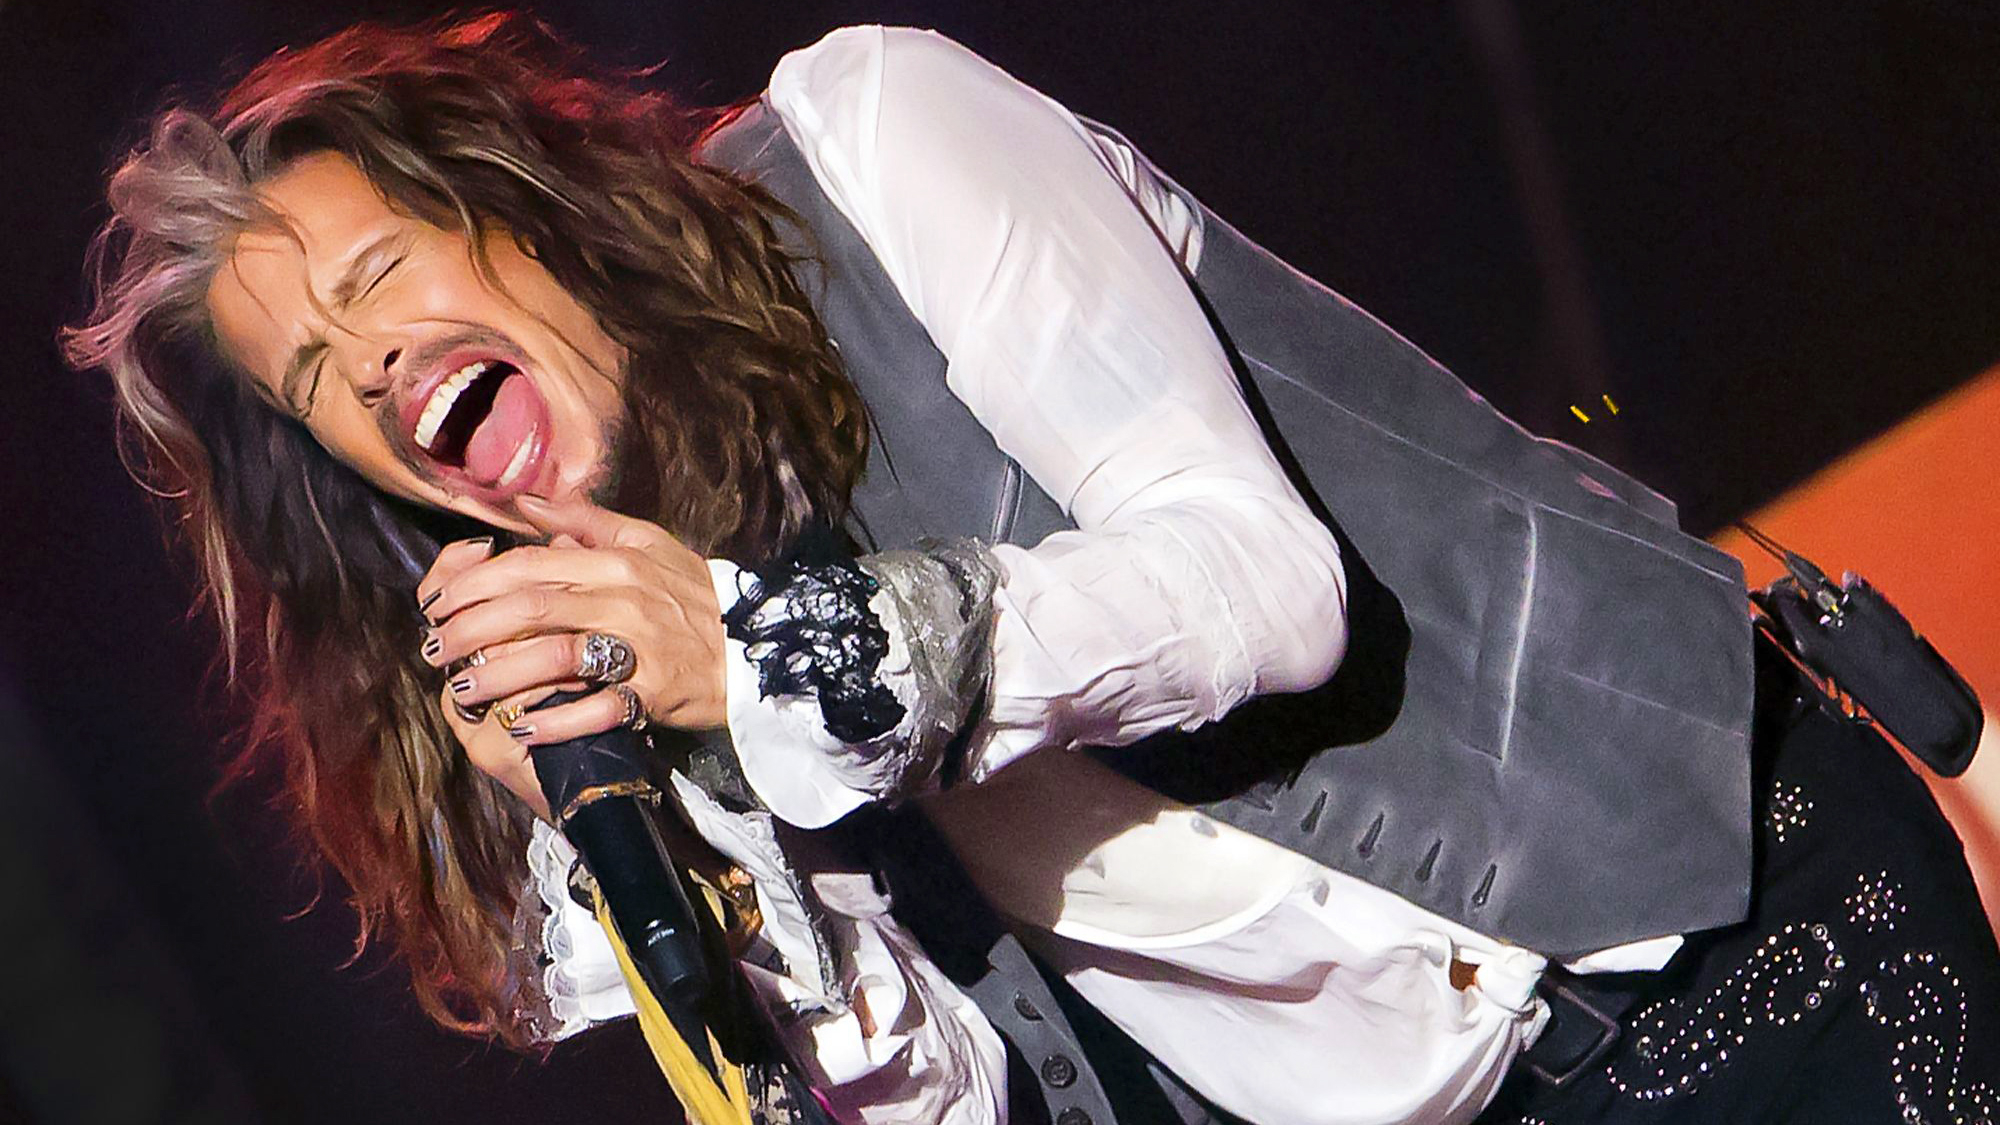 Steven Tyler Nashville Doc 'Out On A Limb': What We